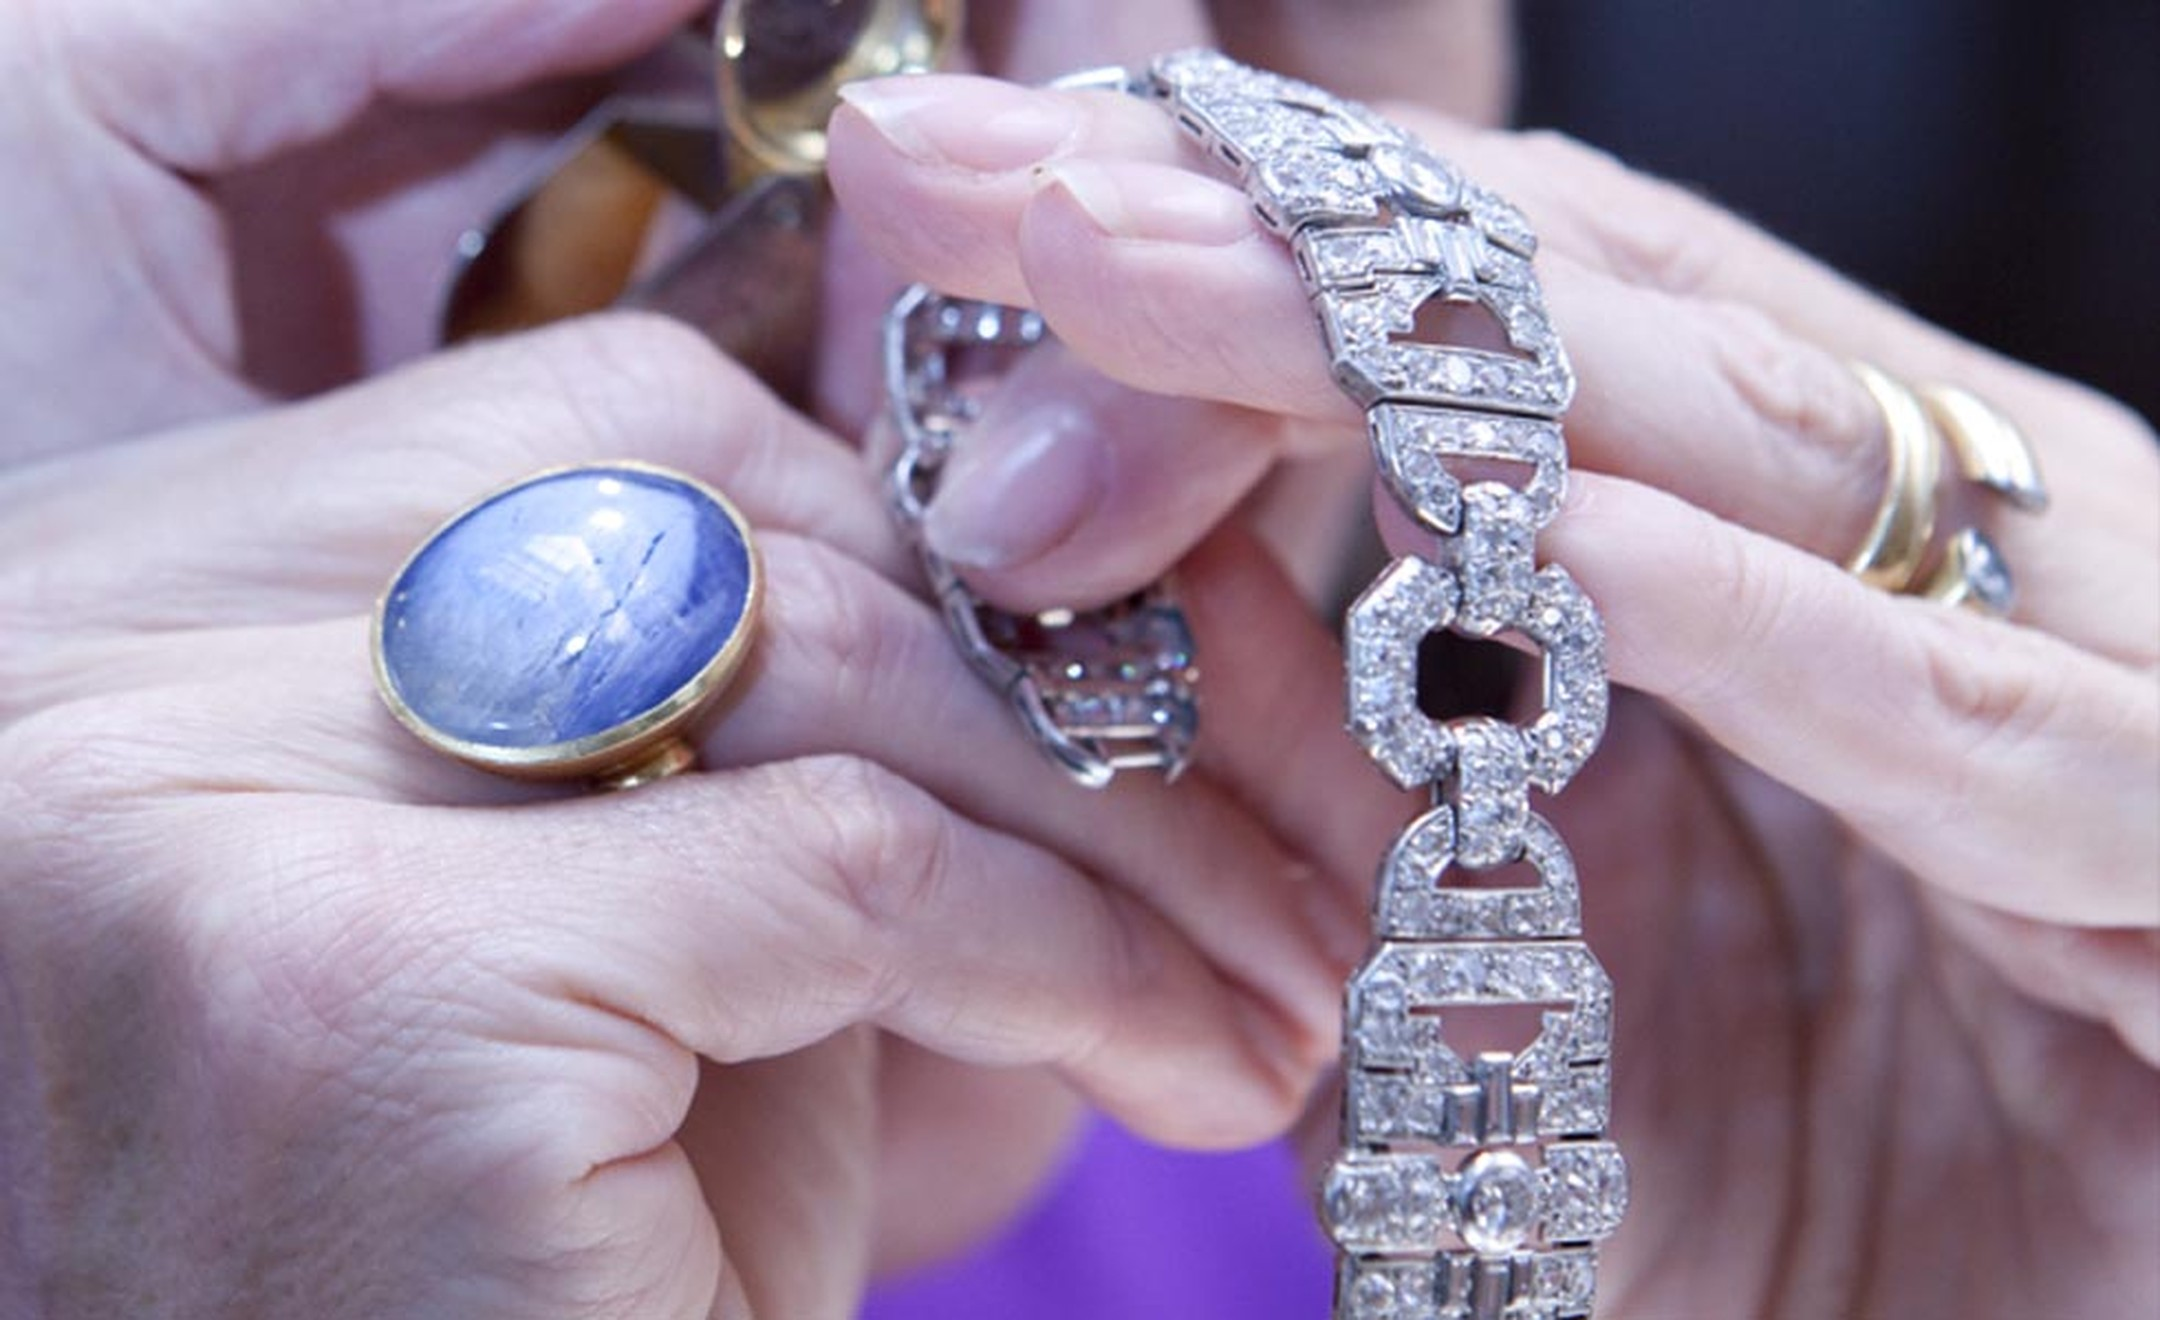 Understanding the origins and value of jewels is ex-Sotheby's jewellery expert Joanna Hardy's area of expertise